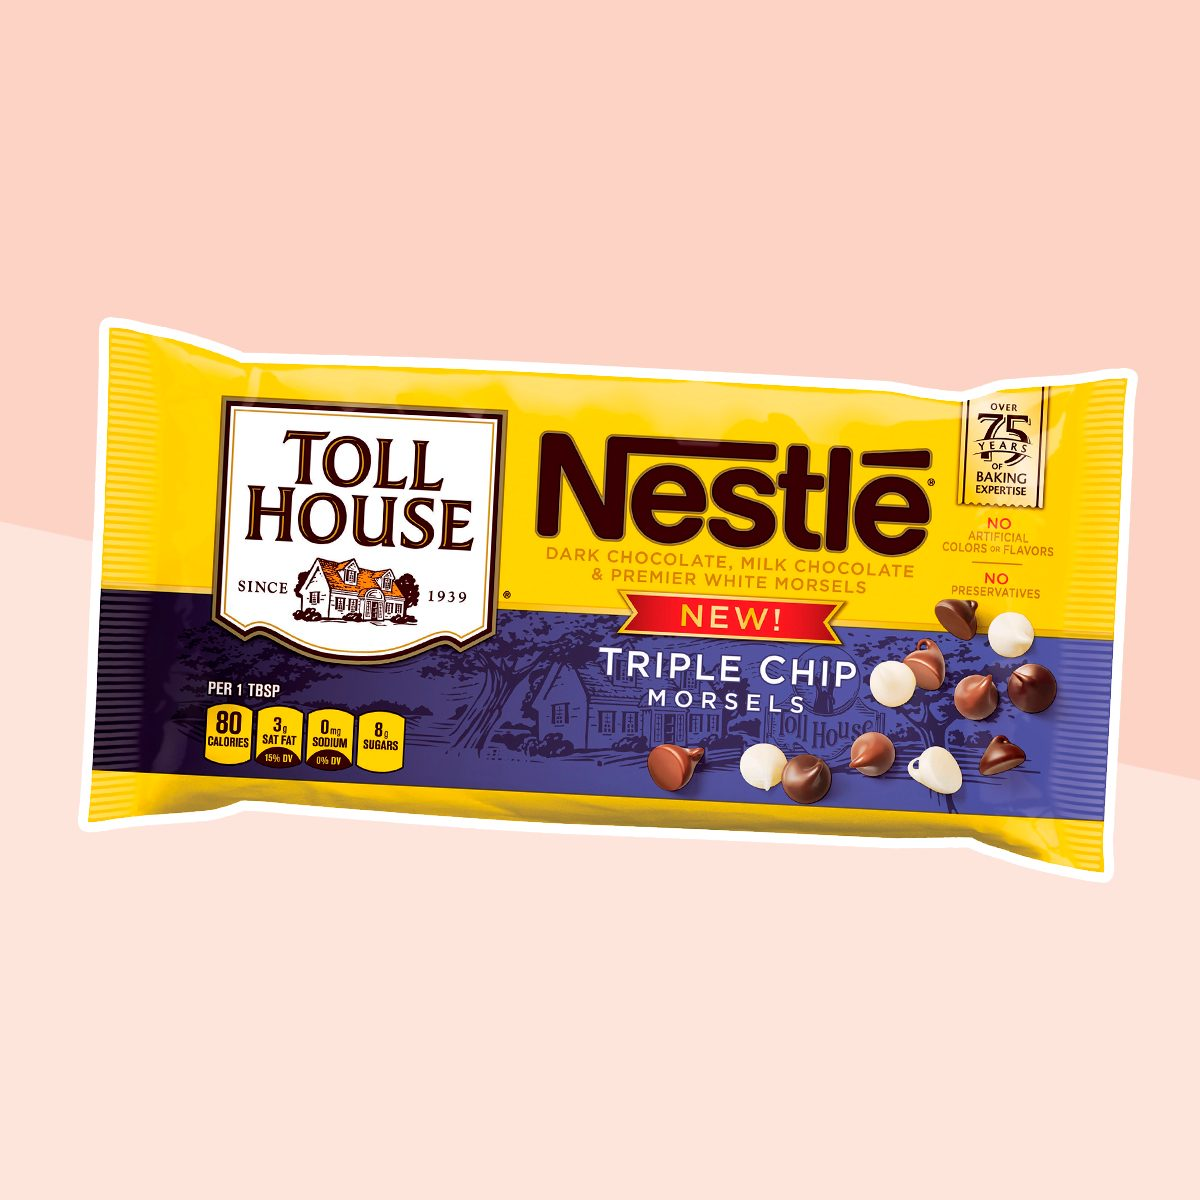 Nestlé Toll House Triple Chip Morsels